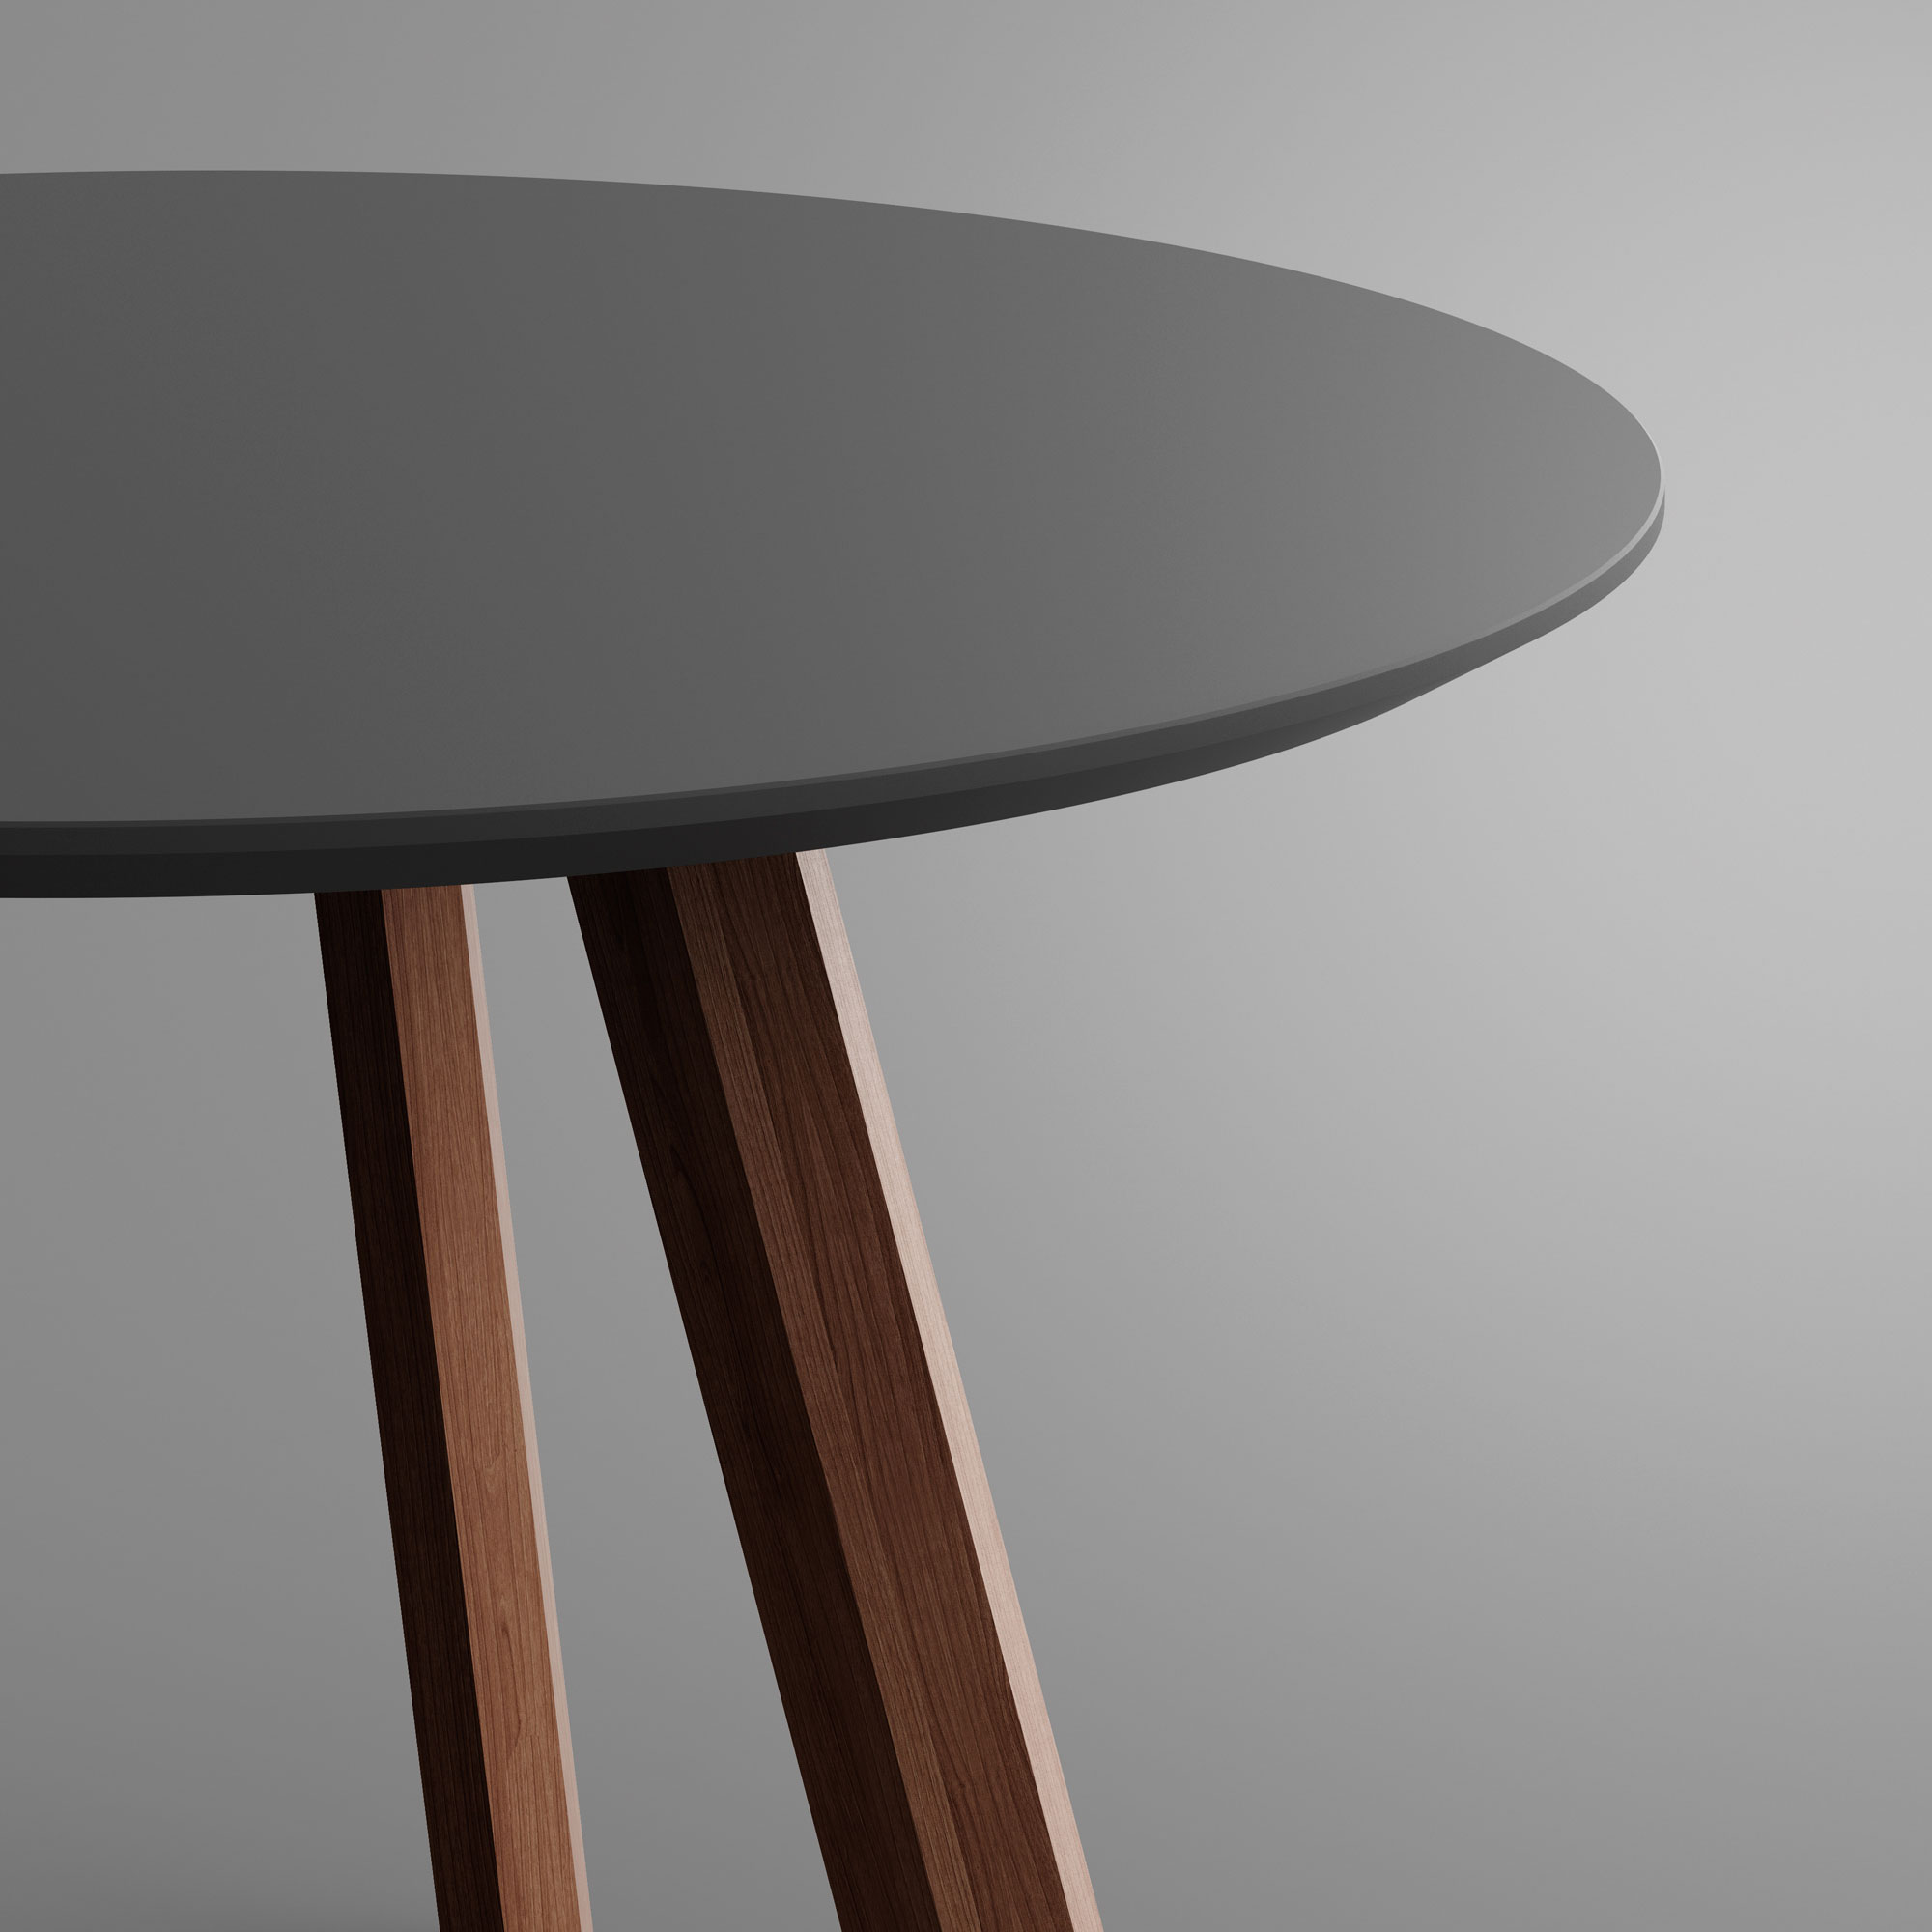 Round Linoleum Table RHOMBI ROUND LINO 3 custom made in solid wood by vitamin design